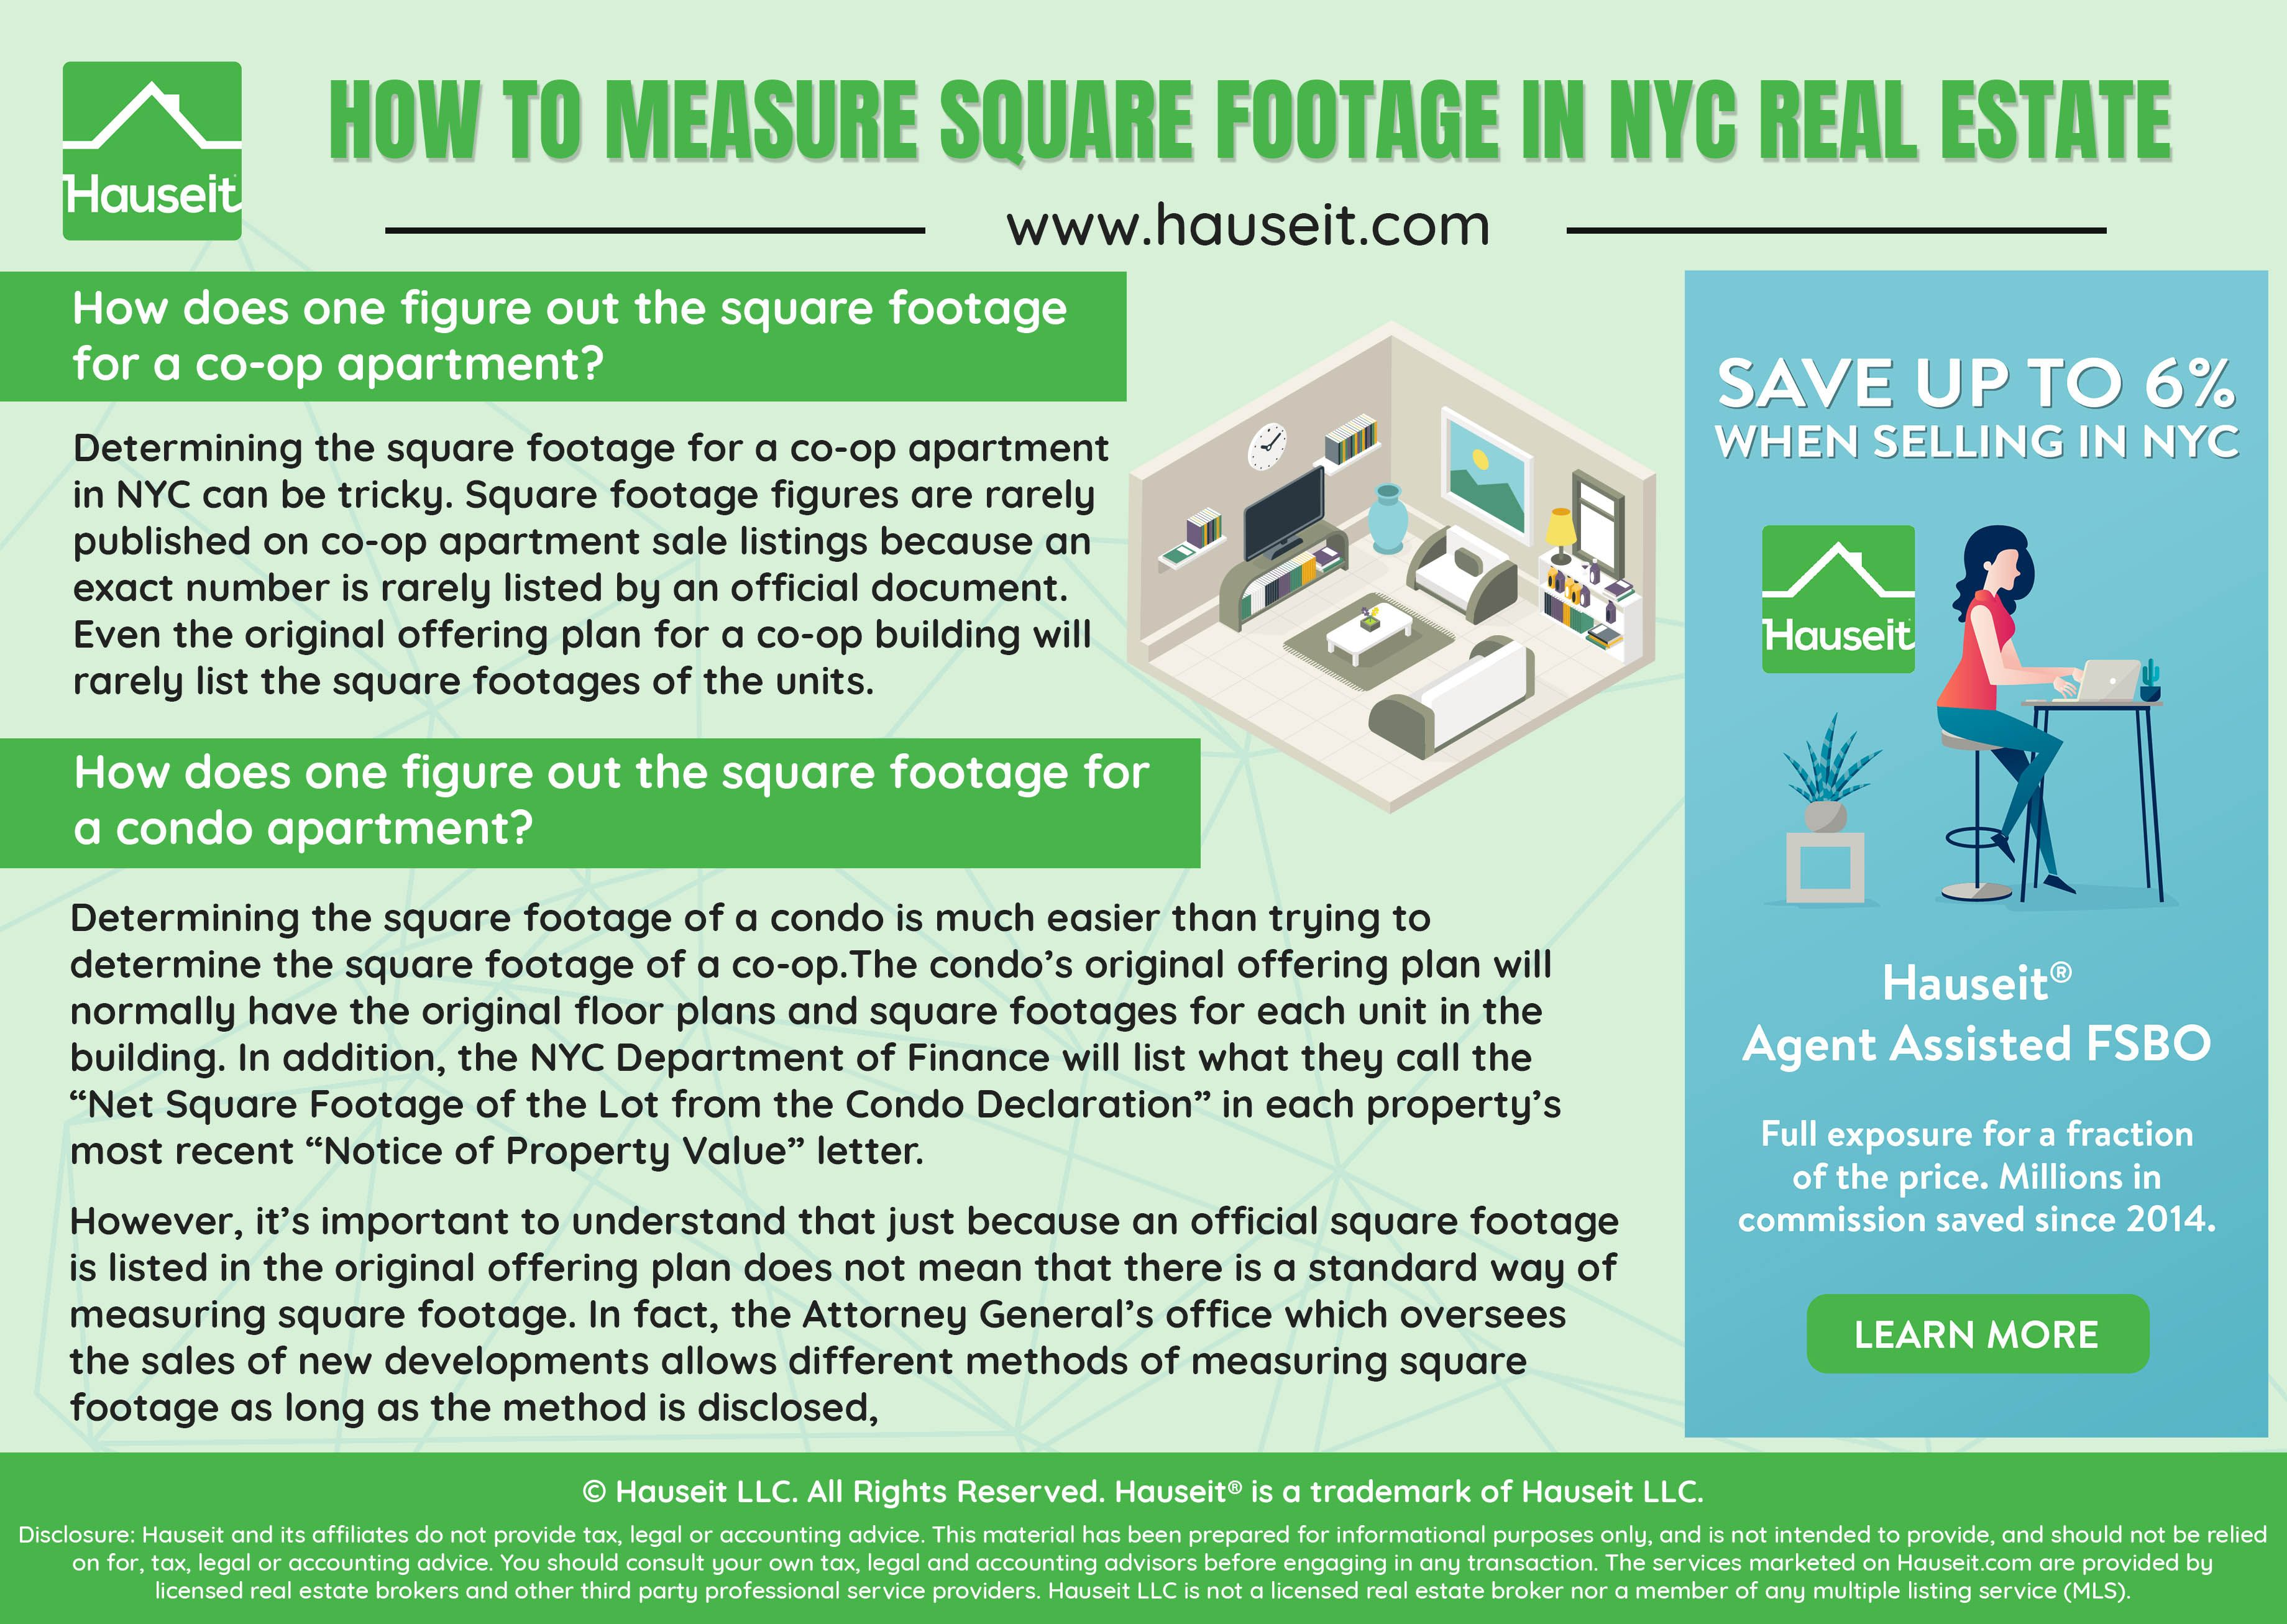 What Exactly Is Square Footage How Is It Measured And How Do You Find The Actual Square Footage Of A Co Op Or Condo Apartme Nyc Real Estate Nyc Square Footage